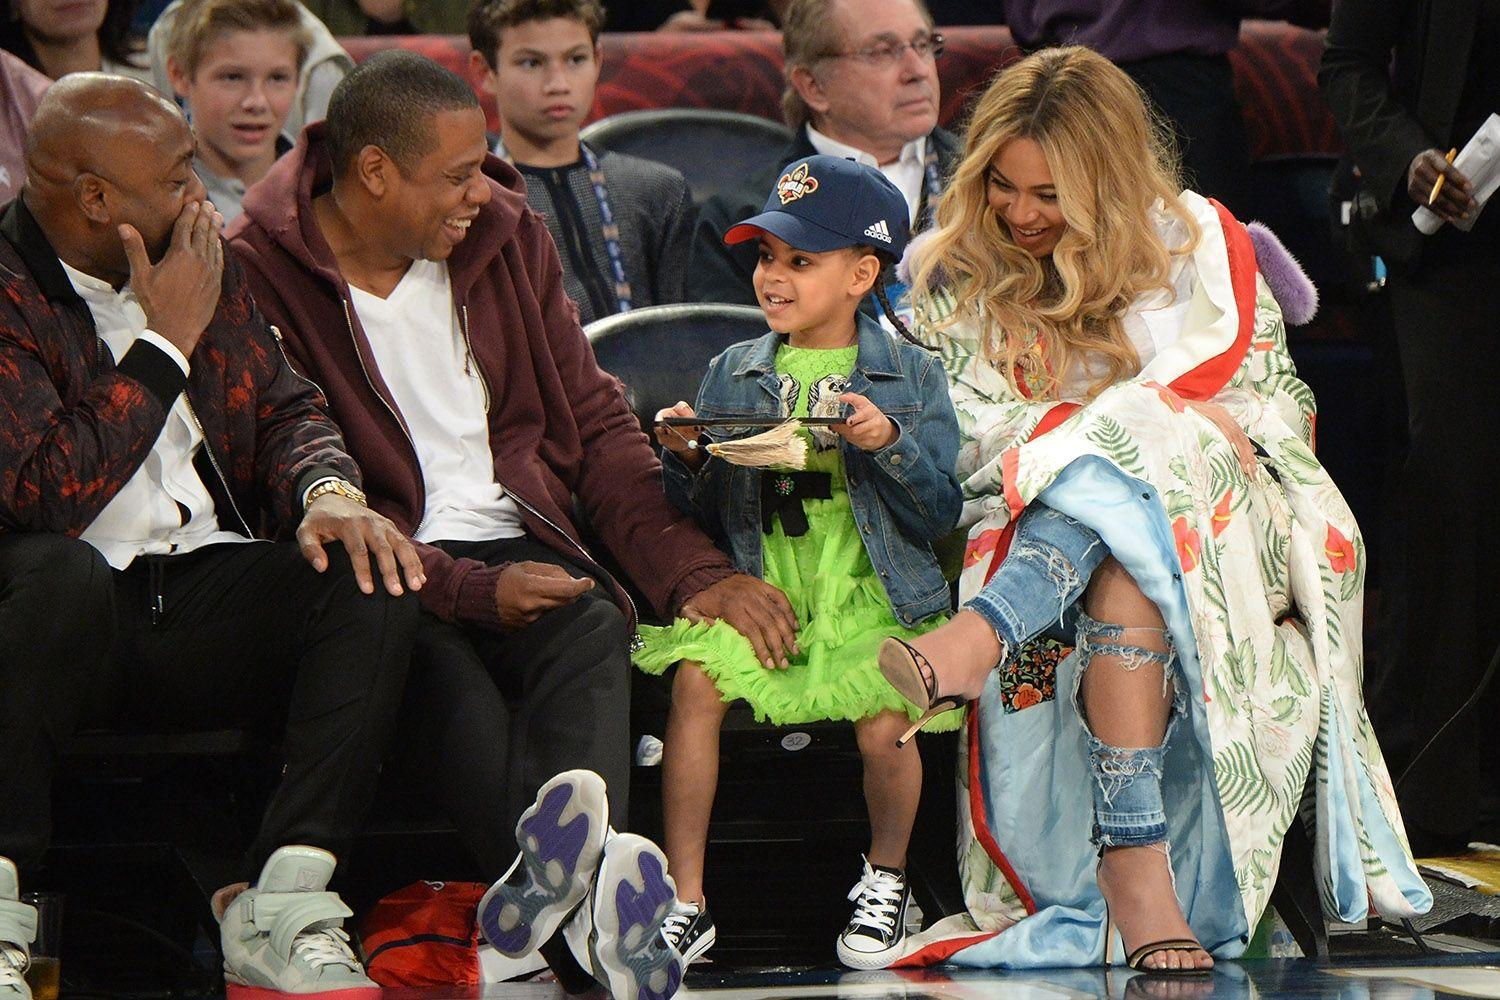 Jay Z, Beyonce and Blue Ivy at the basketball game